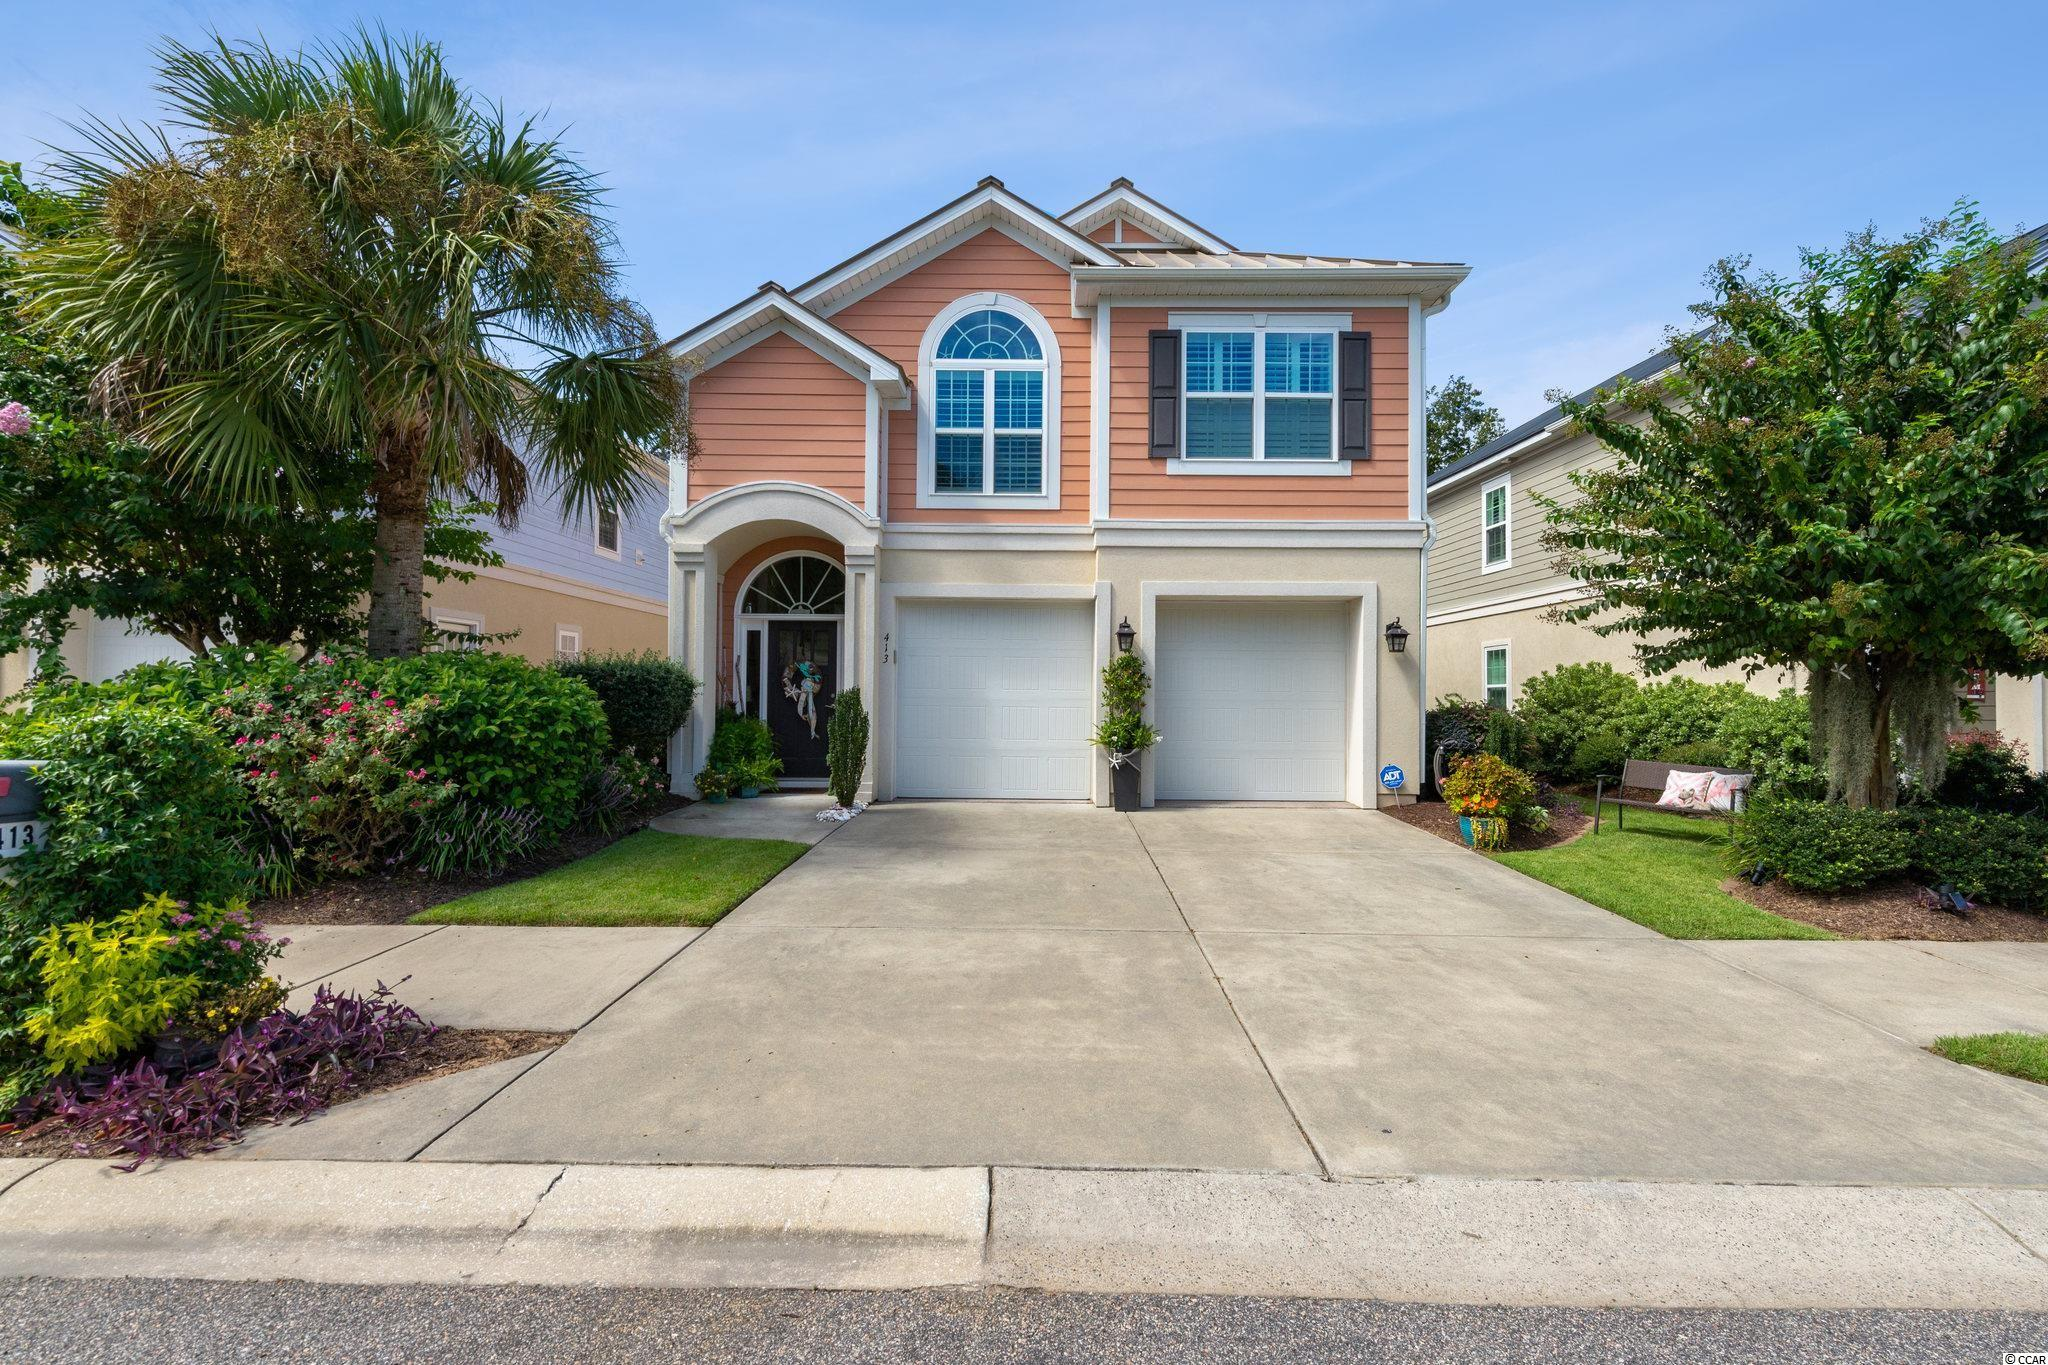 413 7th Ave. S North Myrtle Beach, SC 29582